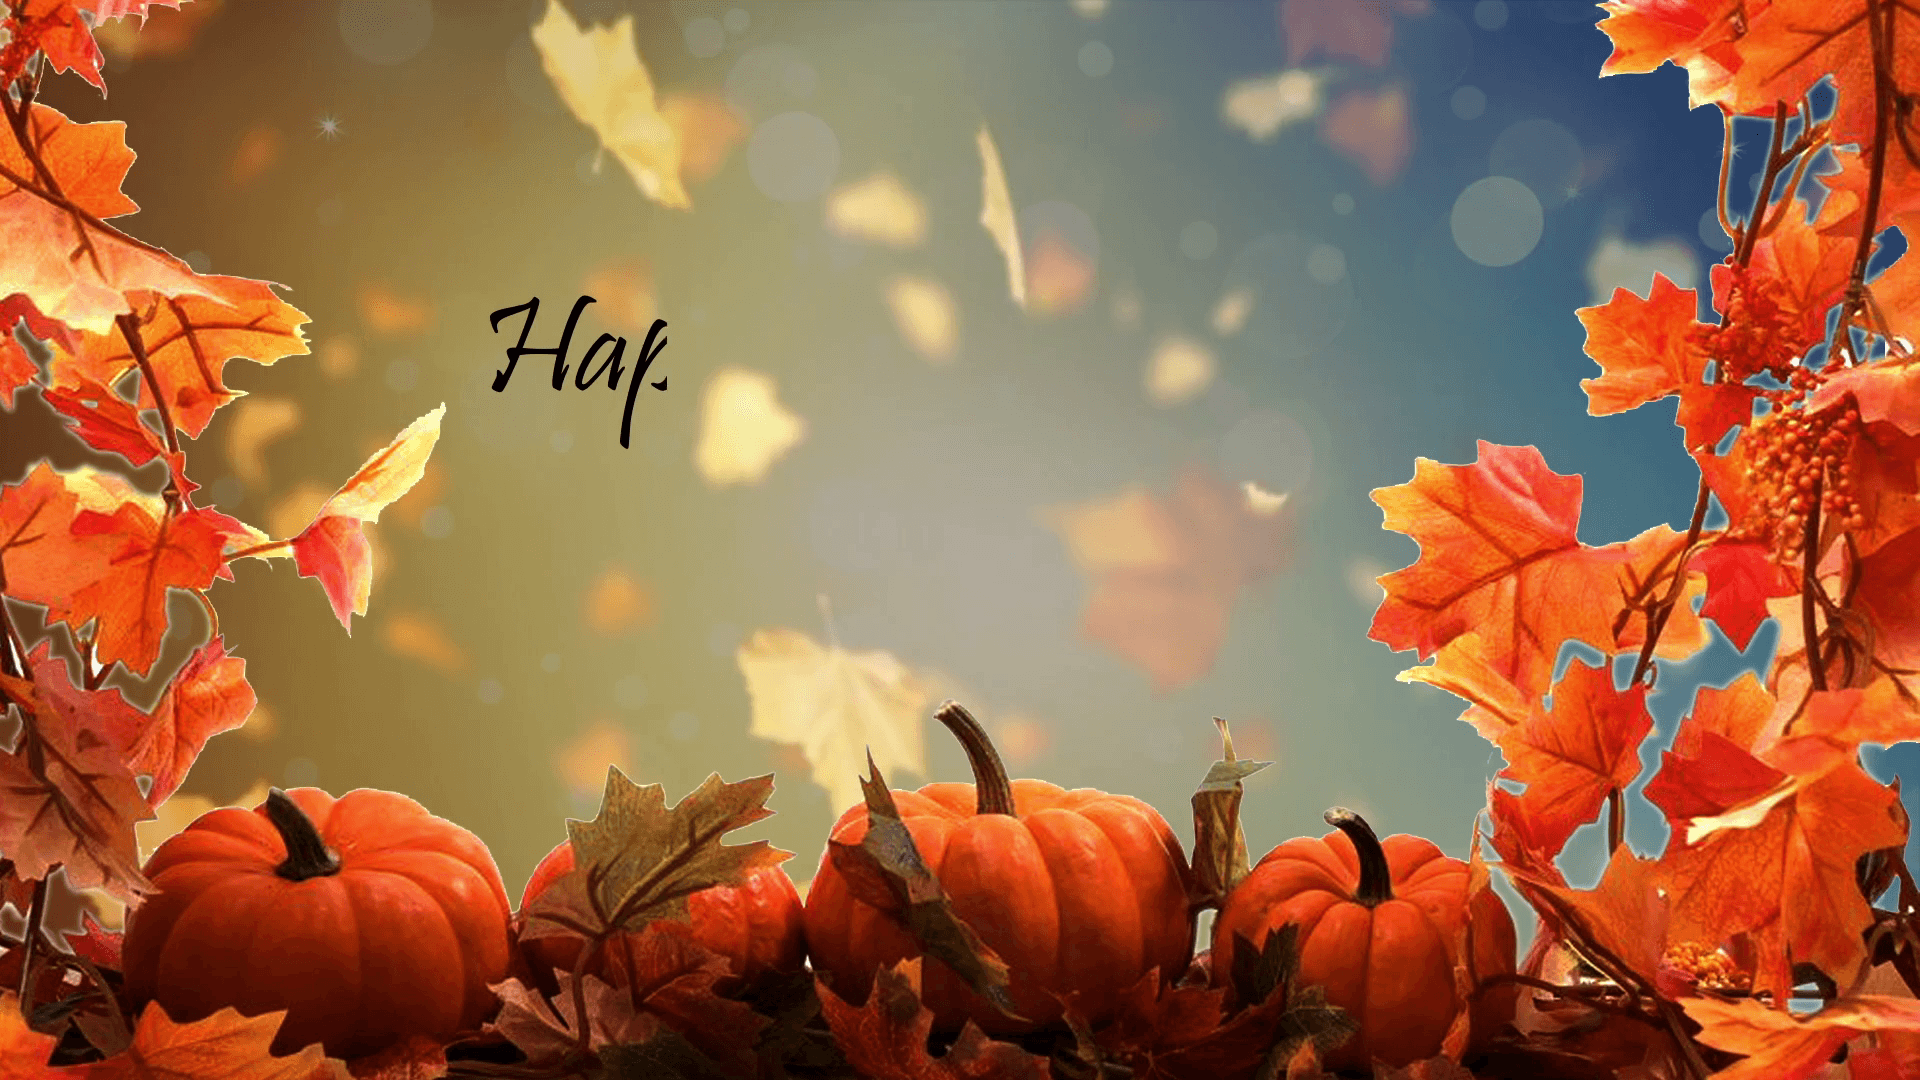 Thanksgiving background HD images Free Download | Happy Thanksgiving